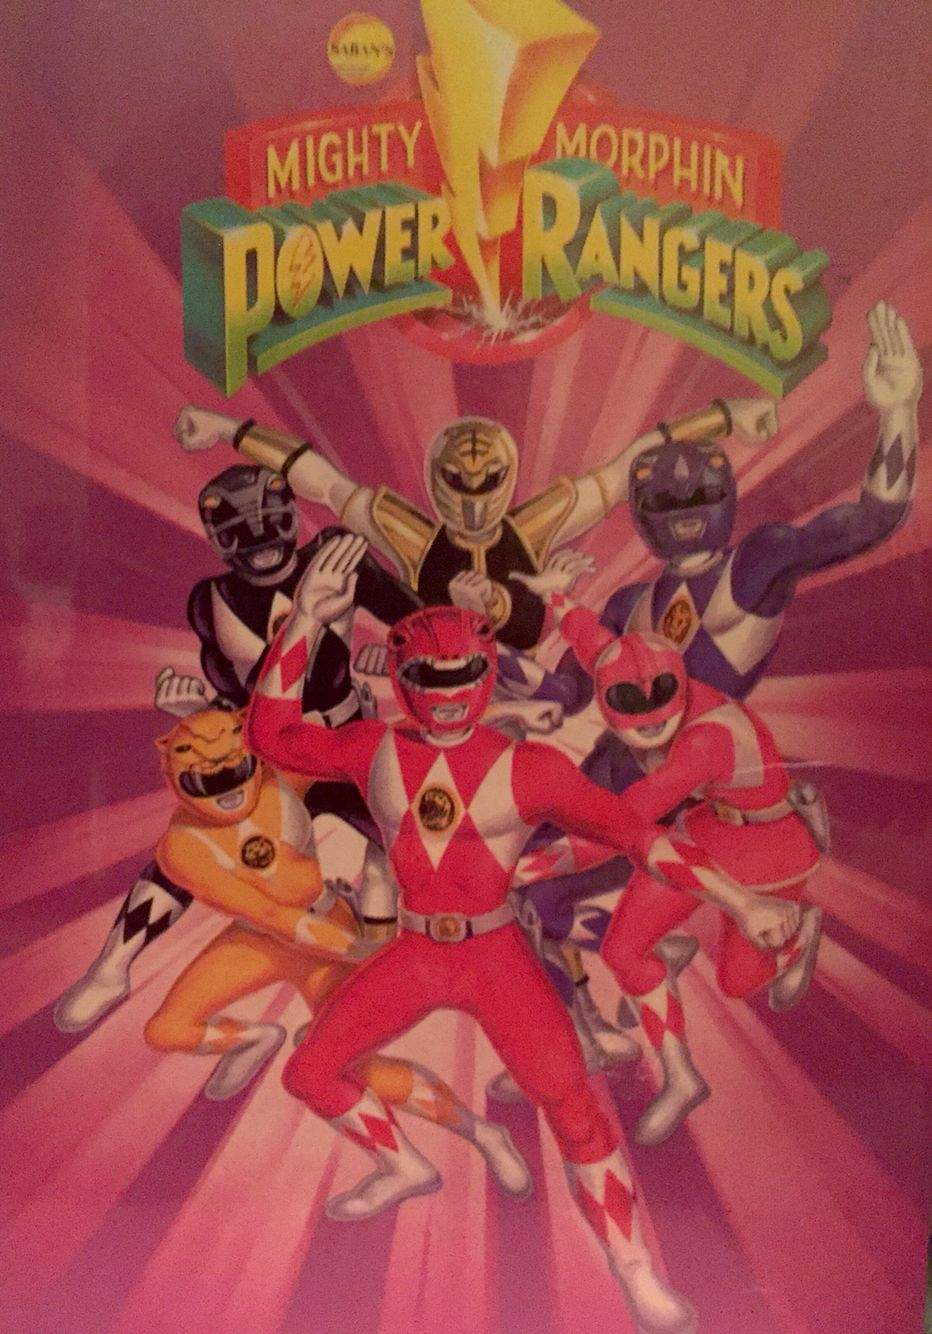 Power Rangers Personalized Book 2 for $20.  Choose any 2 books, does not have to be 2 of same book.  Can also be for different children.    To order: call Lisa at 440-289-3335